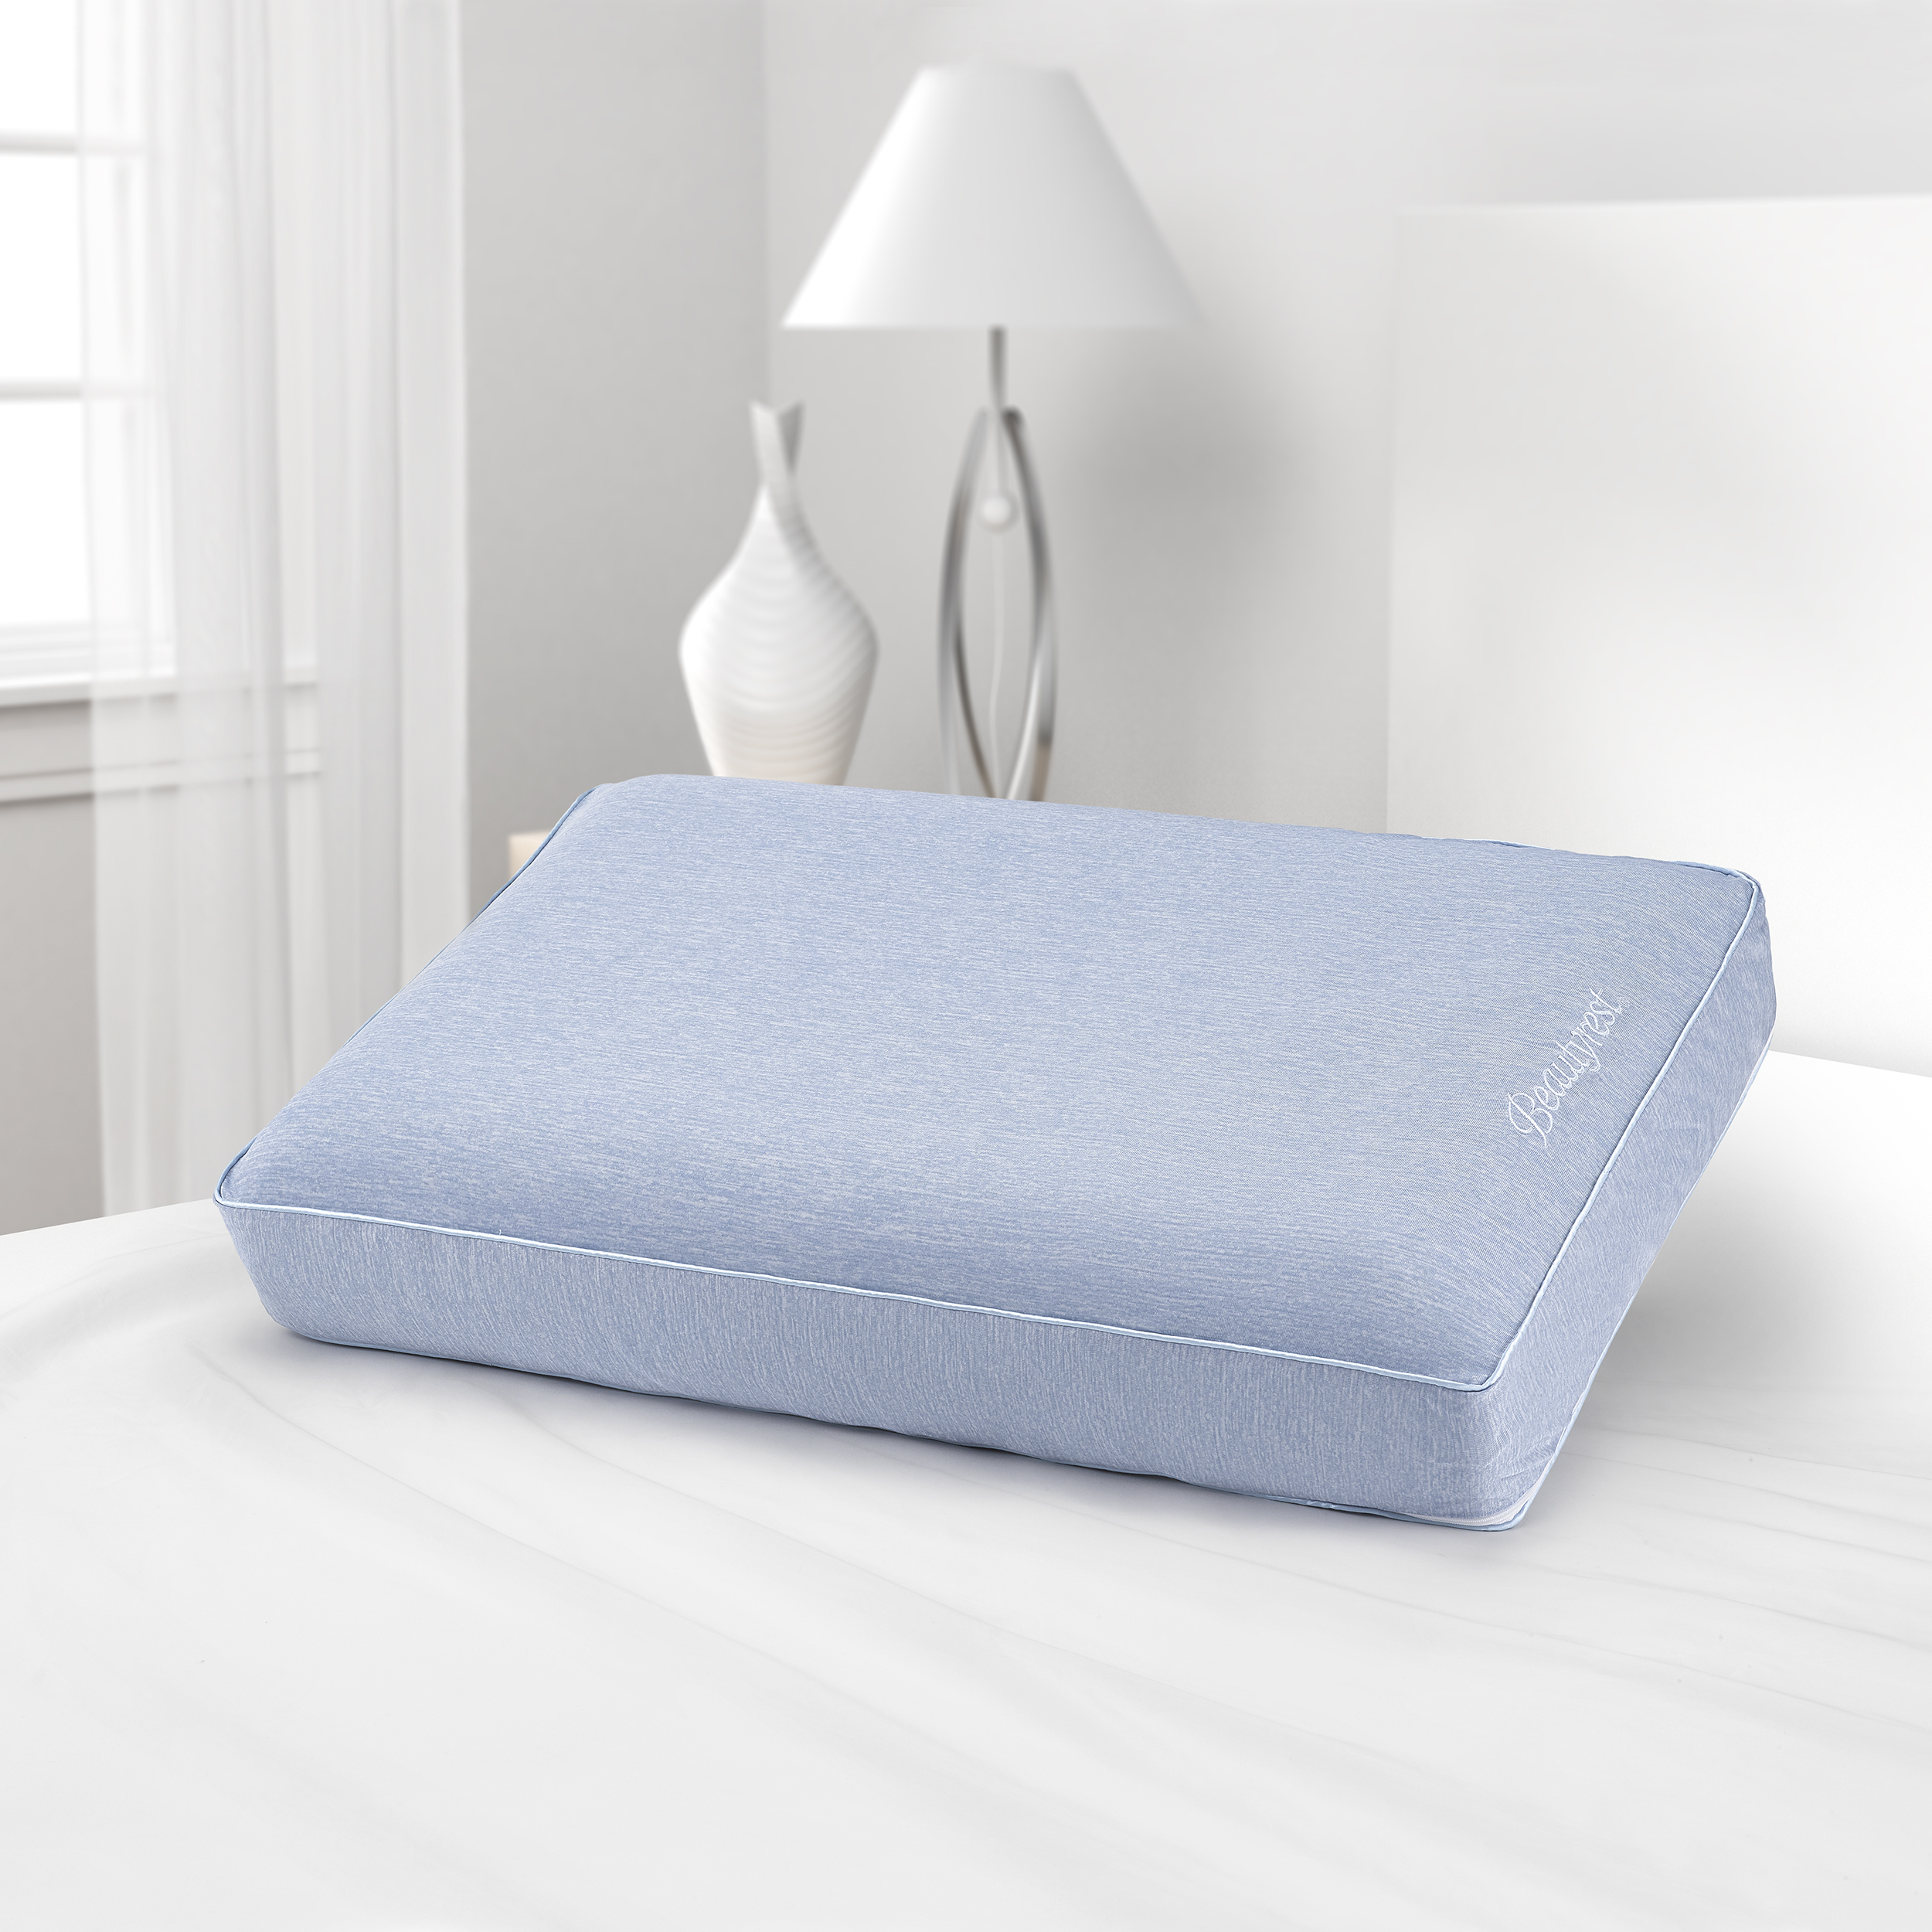 beautyrest silver aquacool memory foam pillow with removable cover standardqueen walmart com